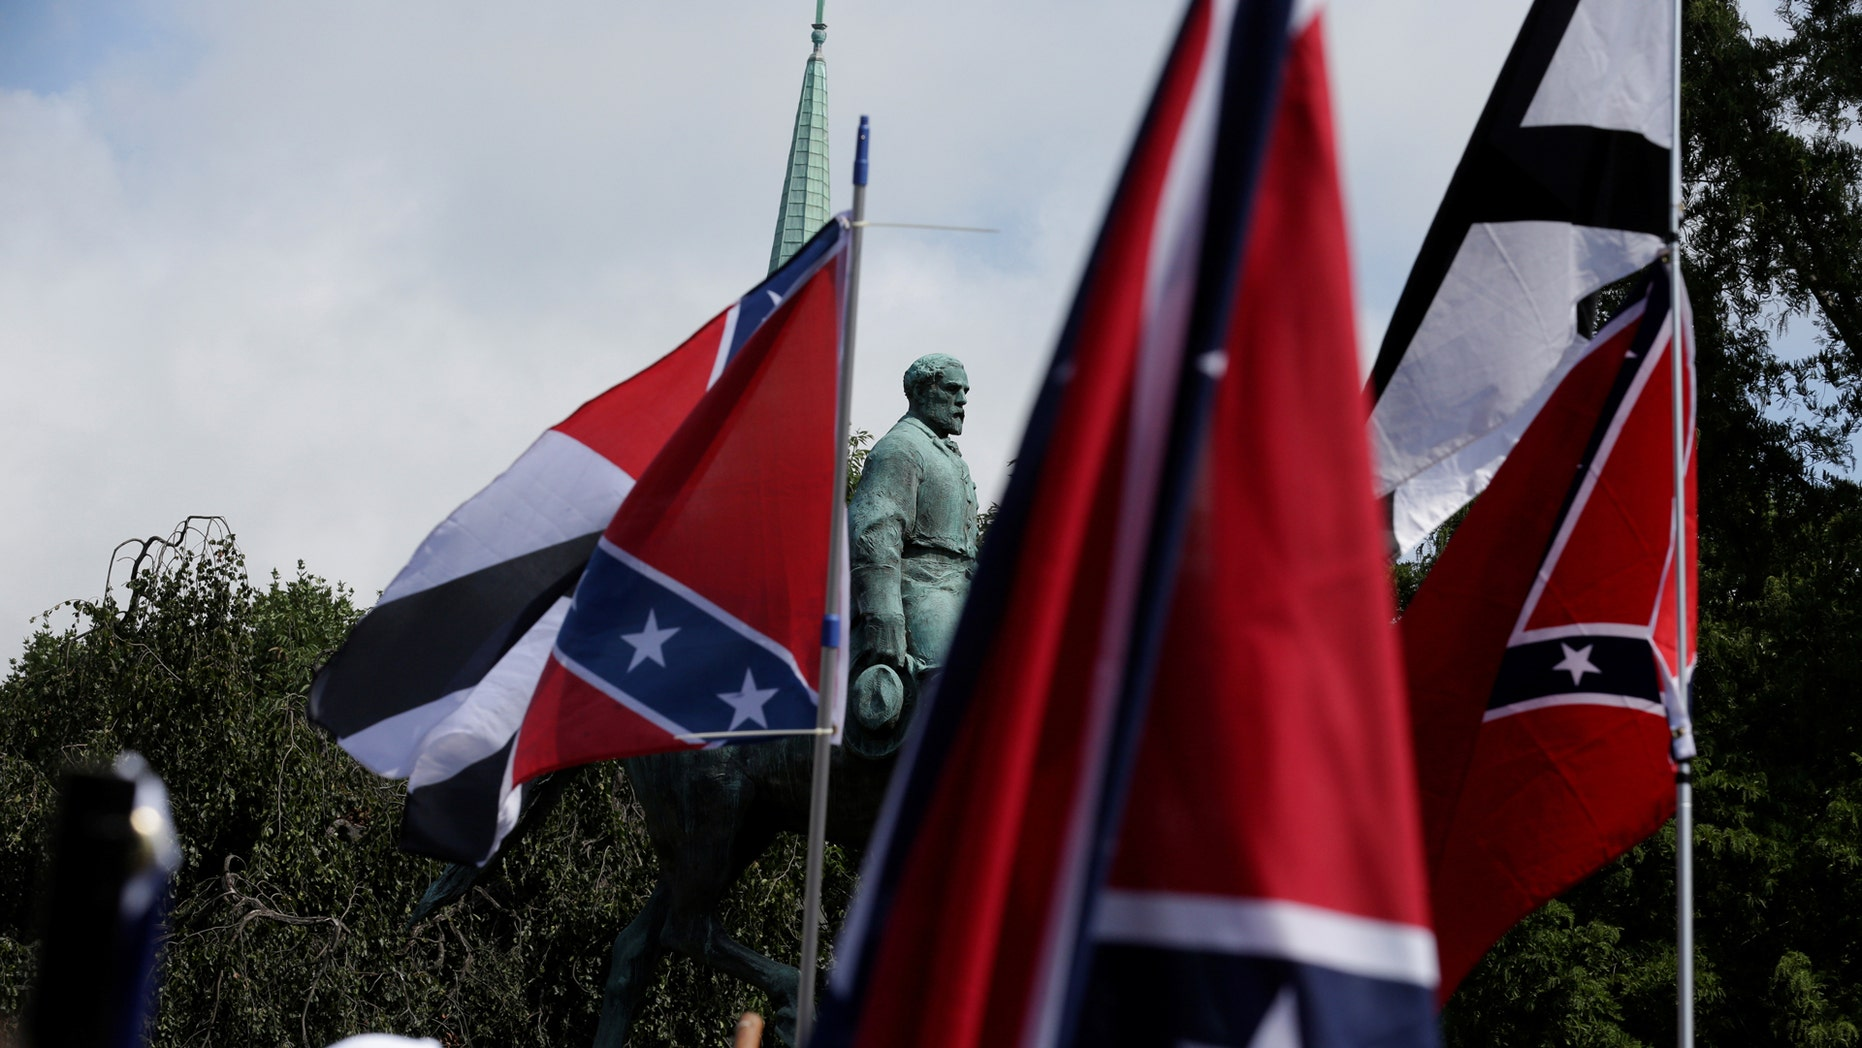 Members of white nationalists rally around a statue of Robert E. Lee in Charlottesville, Va., Aug. 12, 2017.